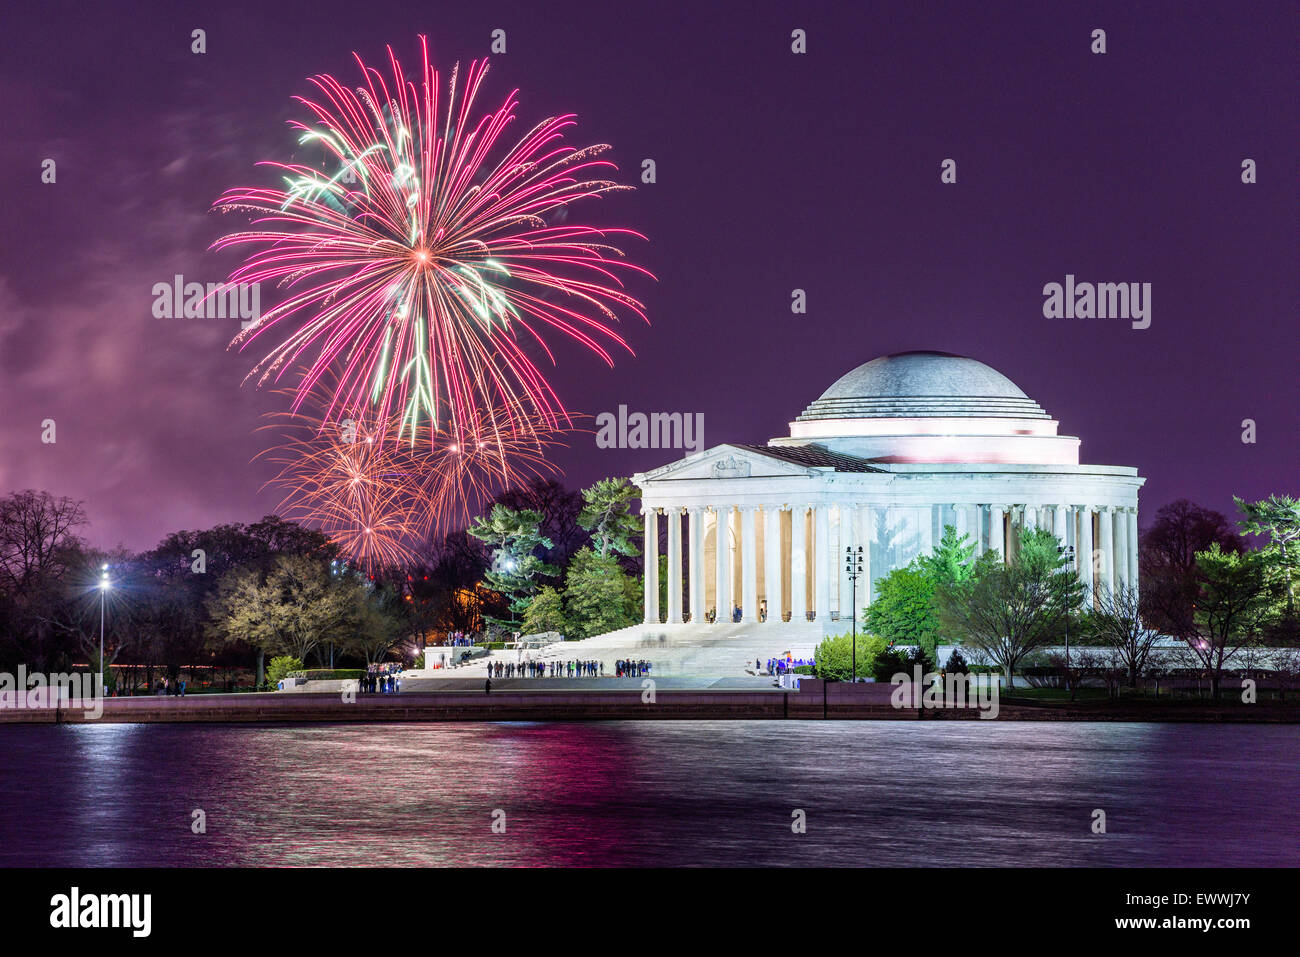 Washington DC, EE.UU tidal basin fuegos artificiales. Imagen De Stock